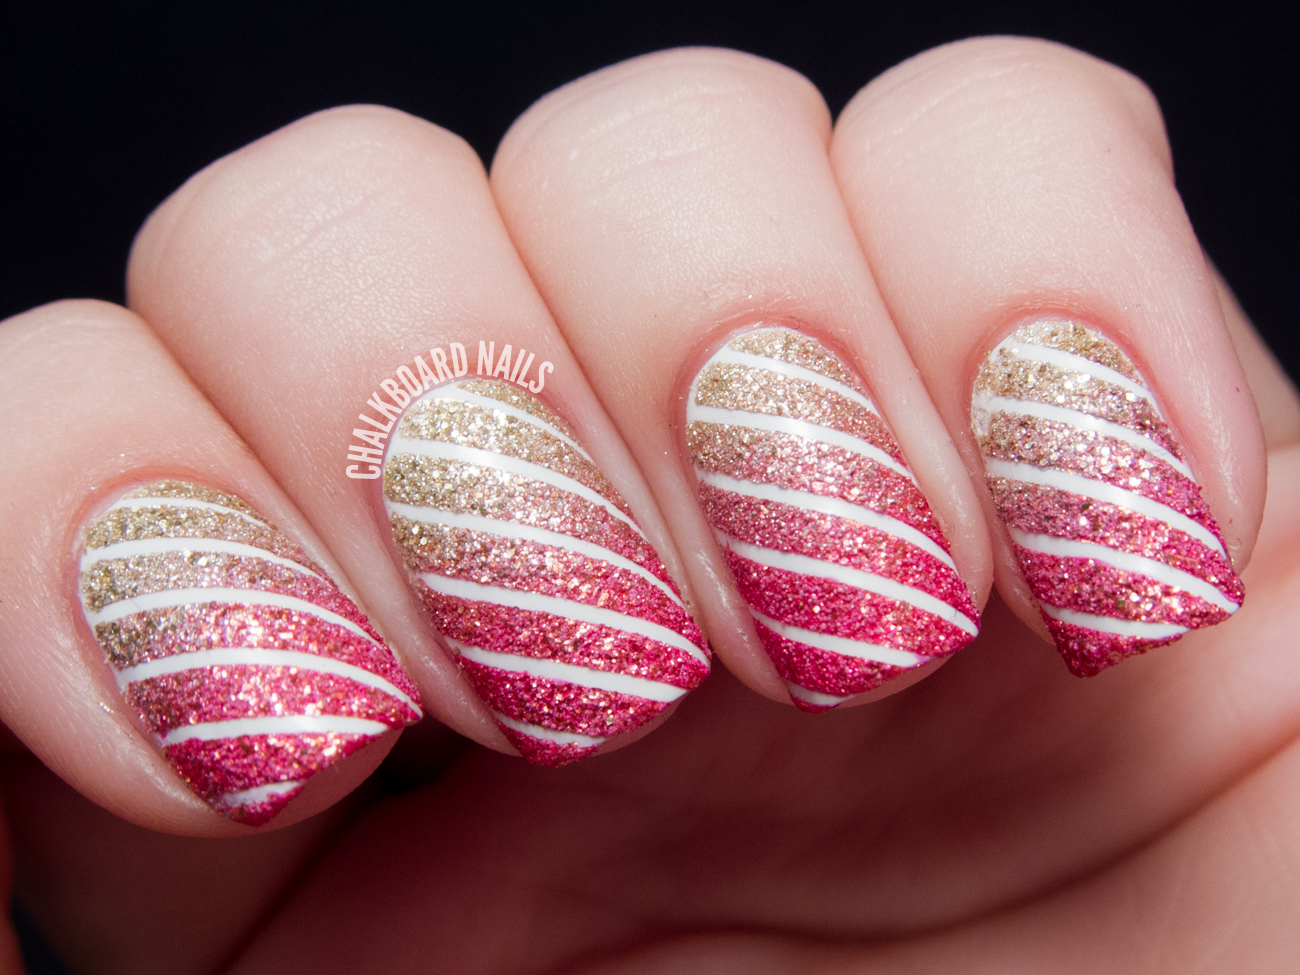 Striped Nail Art Designs 27 30 Unique Striped Nail Art Designs 2015 30 Unique Striped Nail Art Designs 2015 Striped Nail Art Designs 271